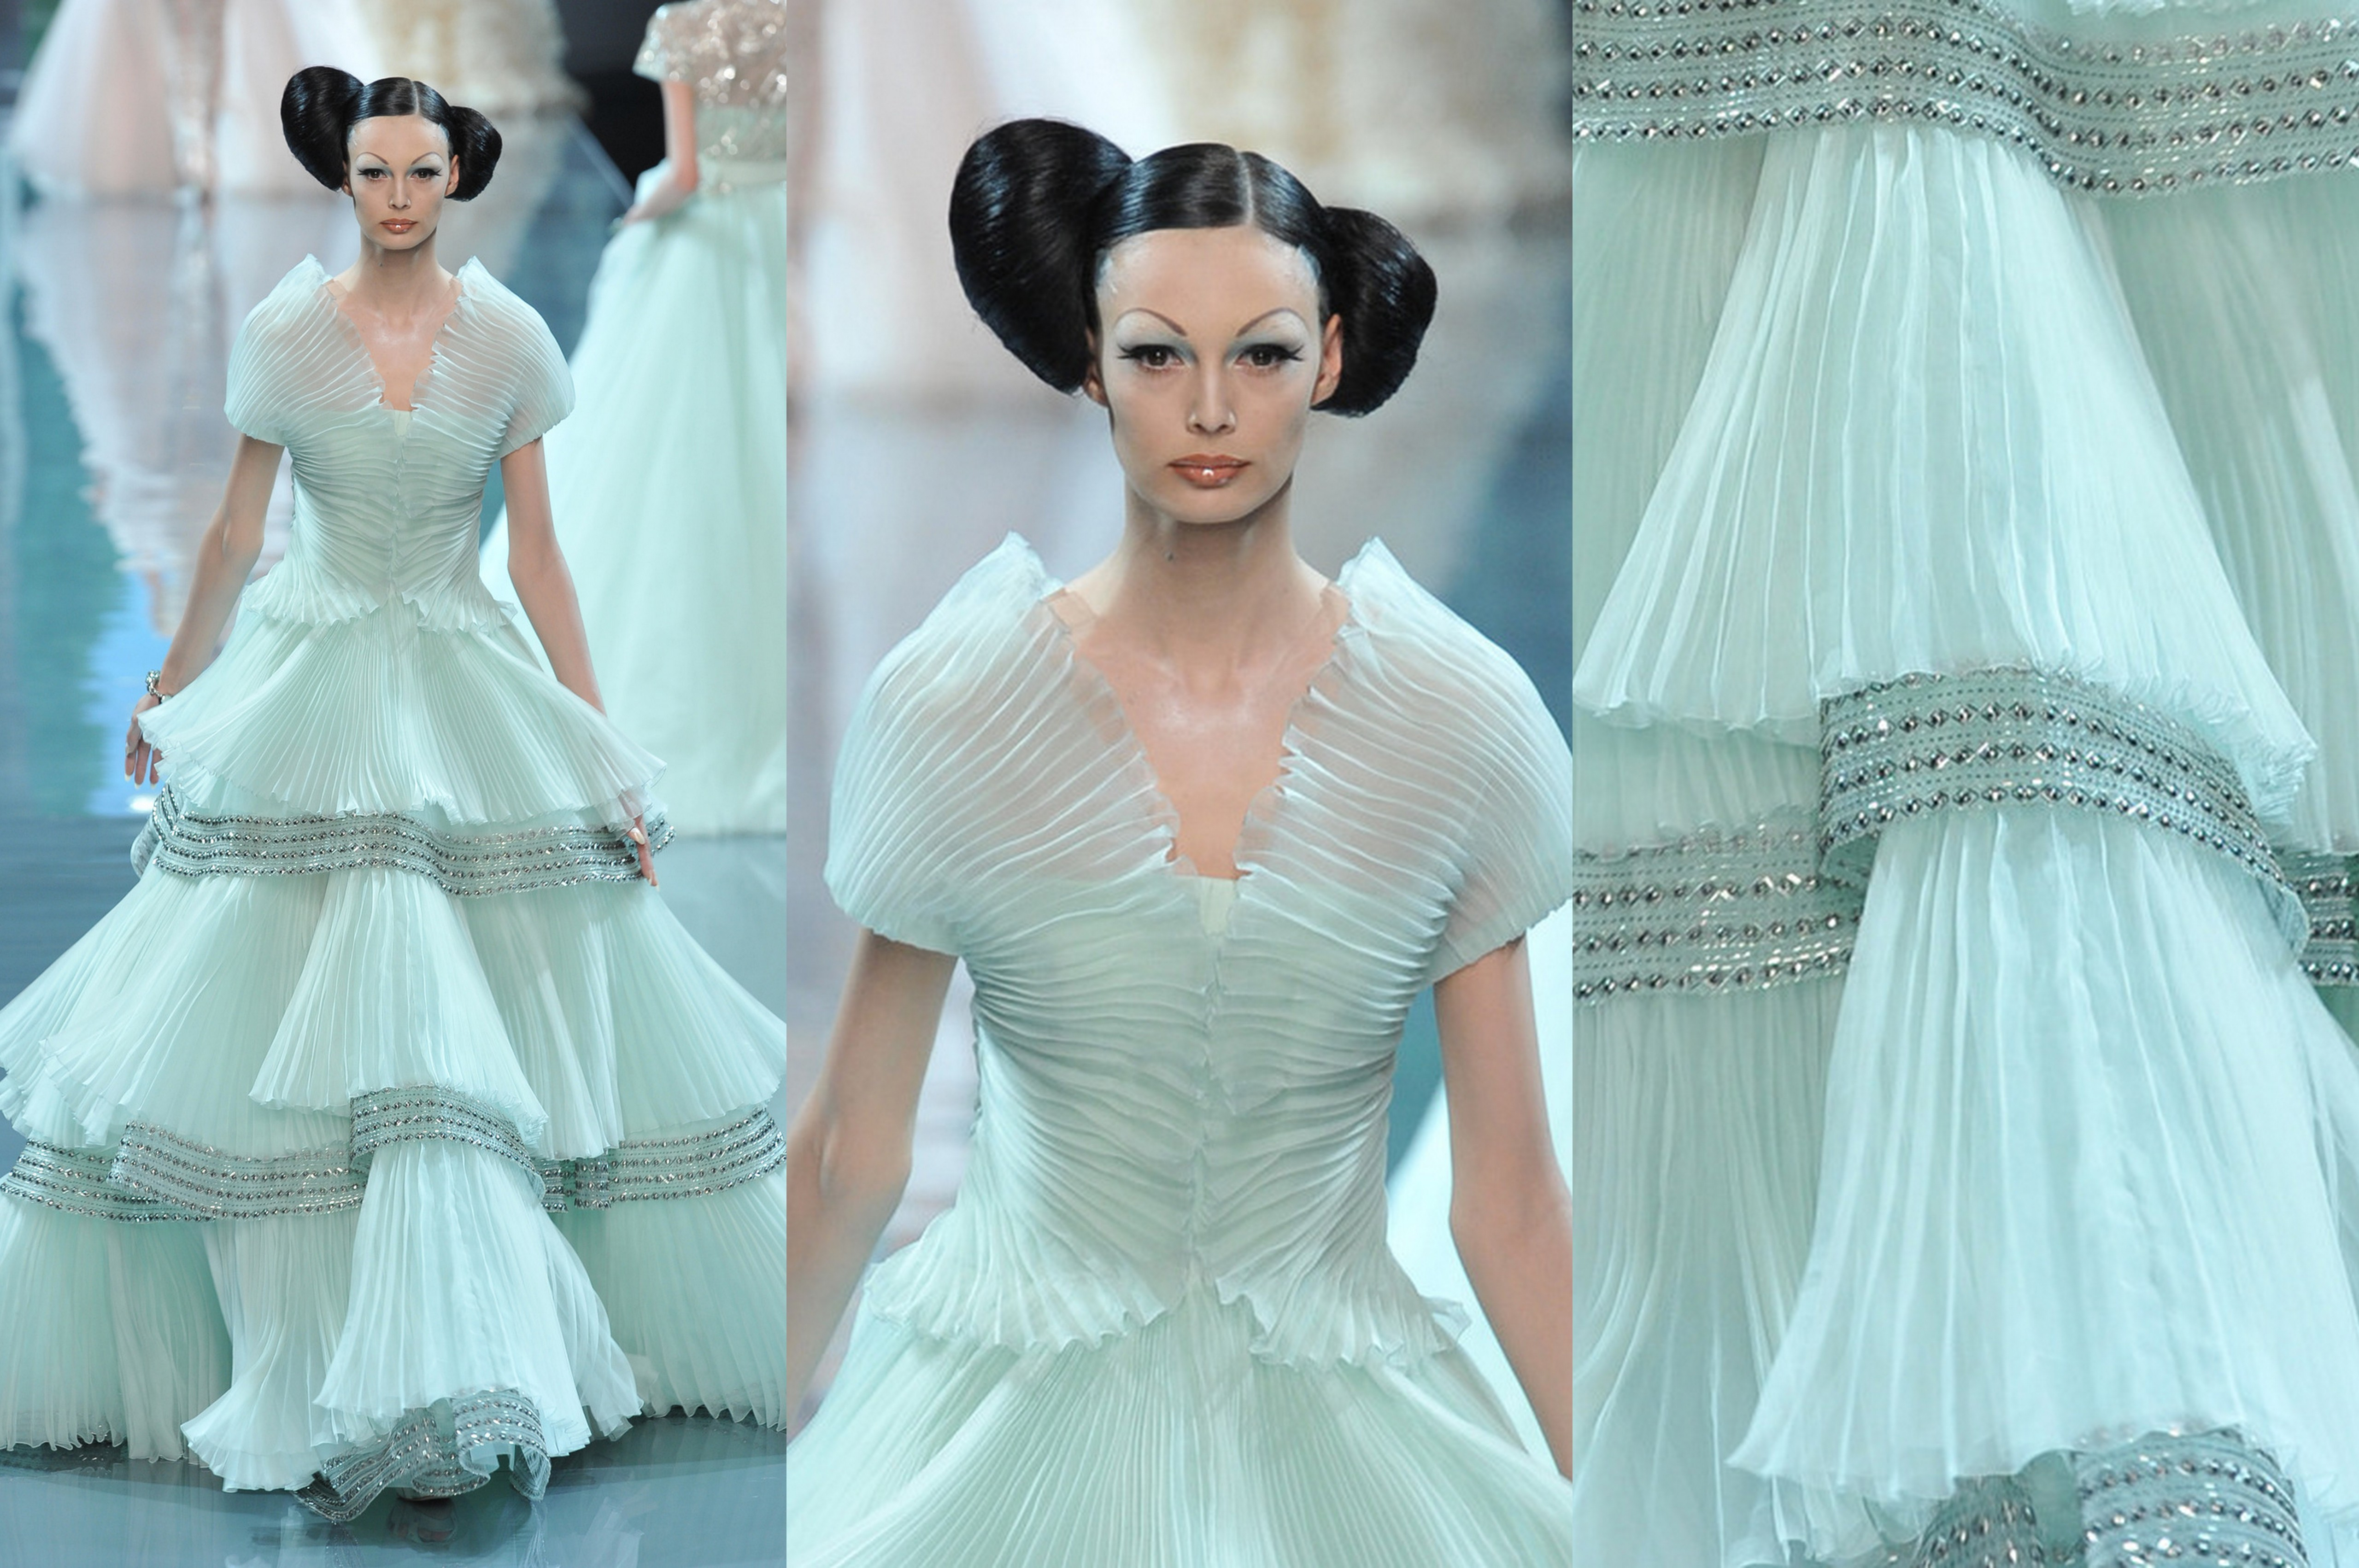 Dior Couture 2008 by John Galliano